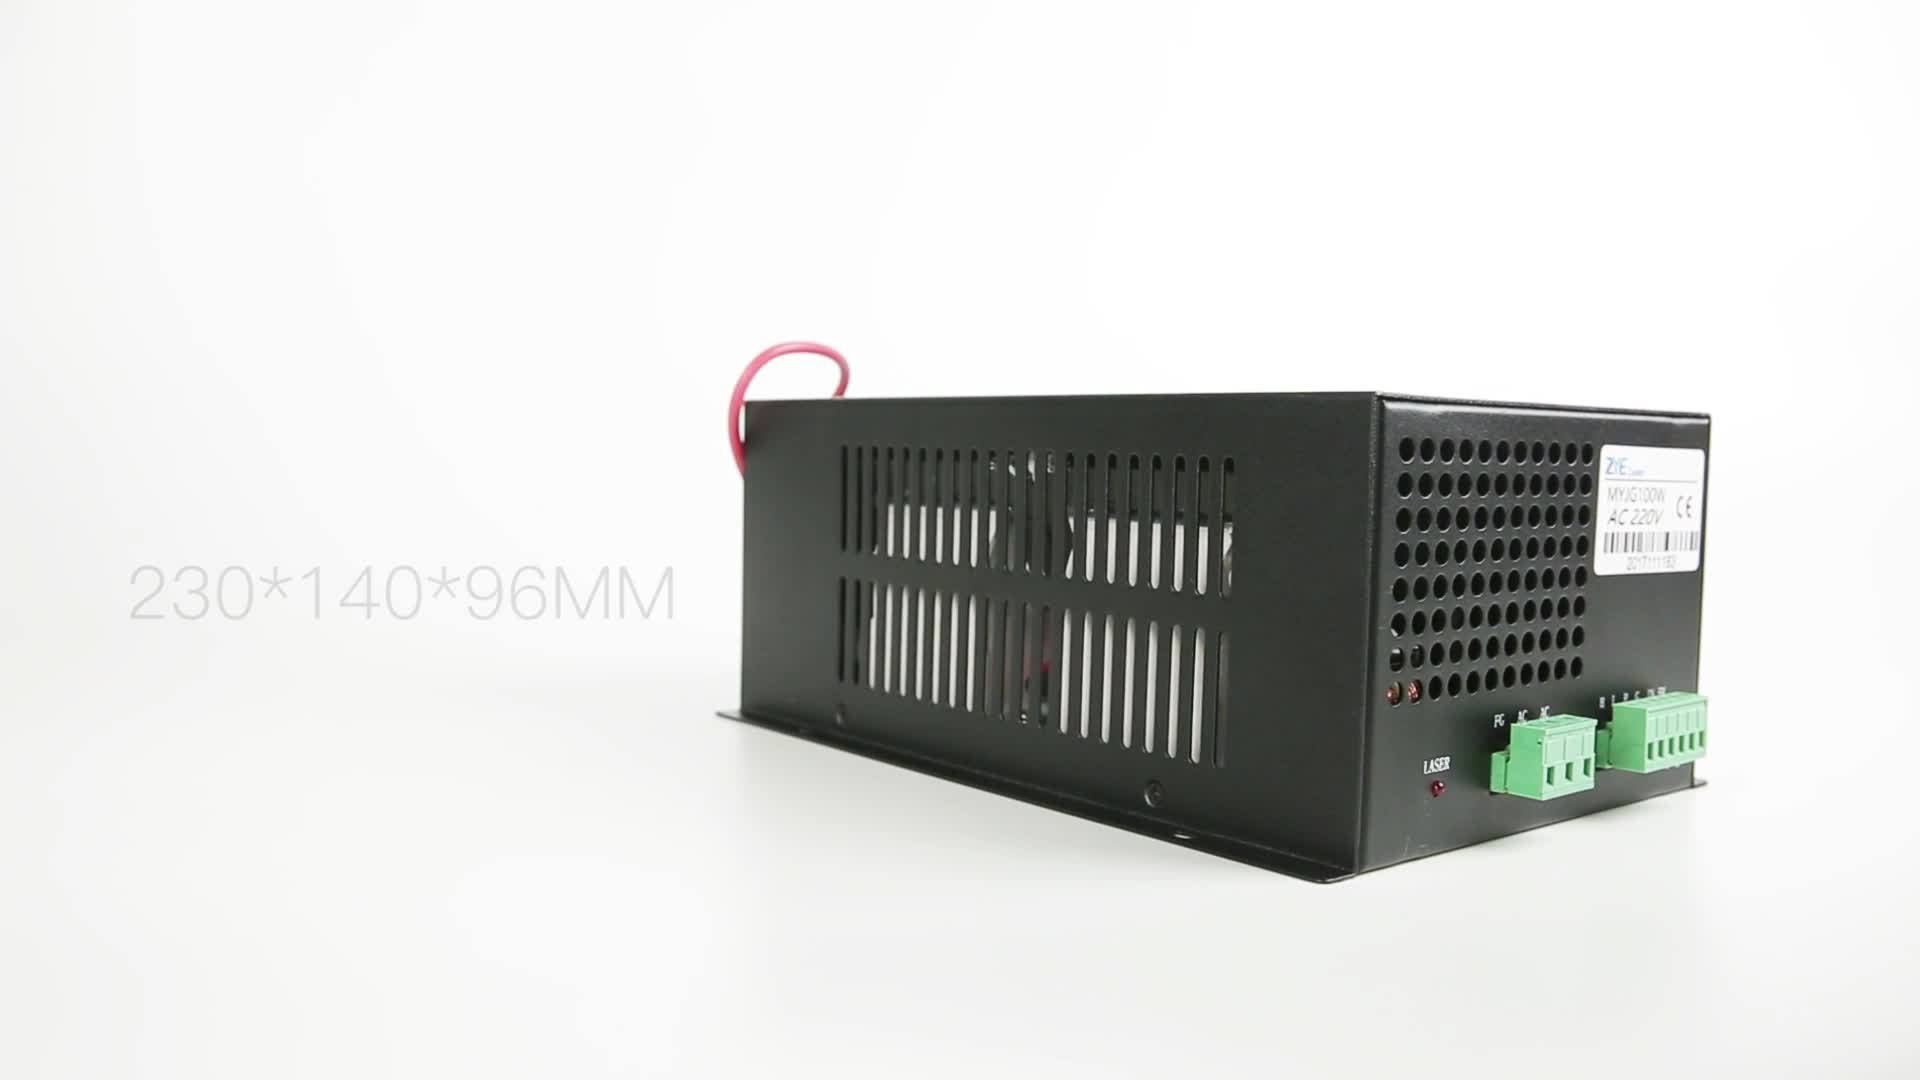 Hair Extensions & Wigs The Equipment Part Of 60w T60 Carbon Dioxide Laser Power Supply For Laser Cutting Machine